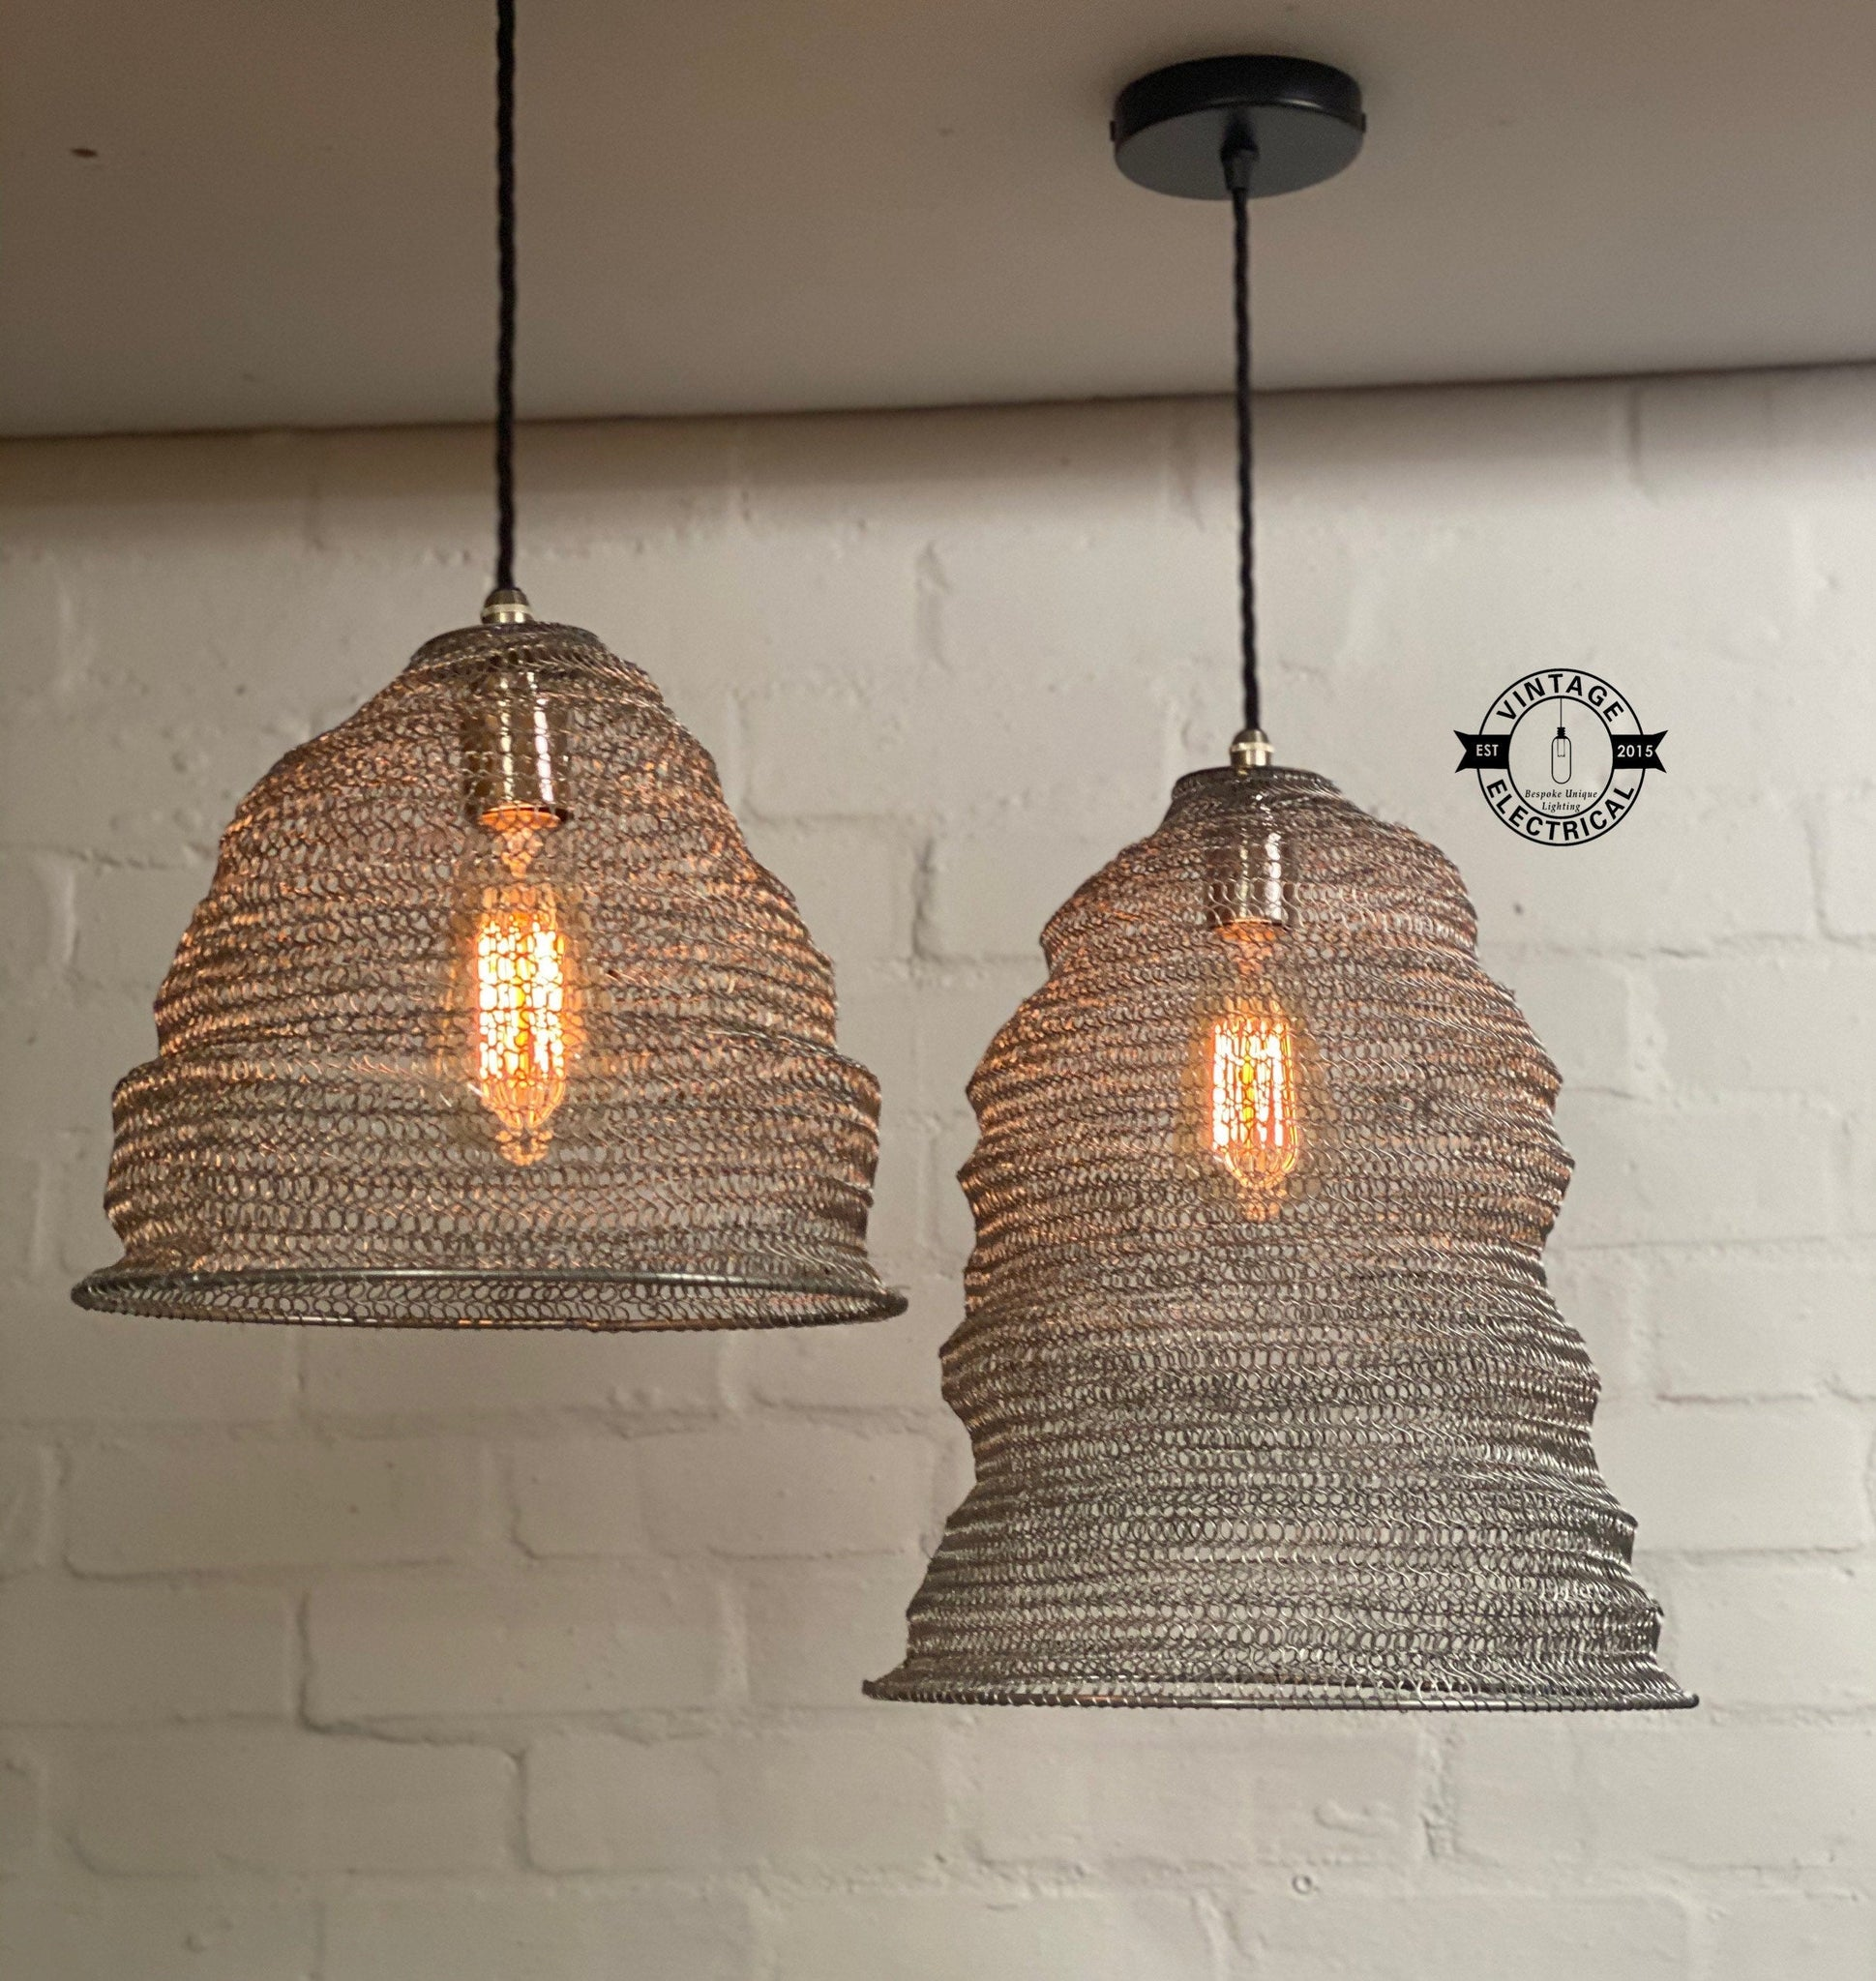 Walton ~ Silver Wire Industrial Lampshade Pendant Set Light | Ceiling Dining Room | Kitchen Table | Vintage 1 x Edison Filament Bulb